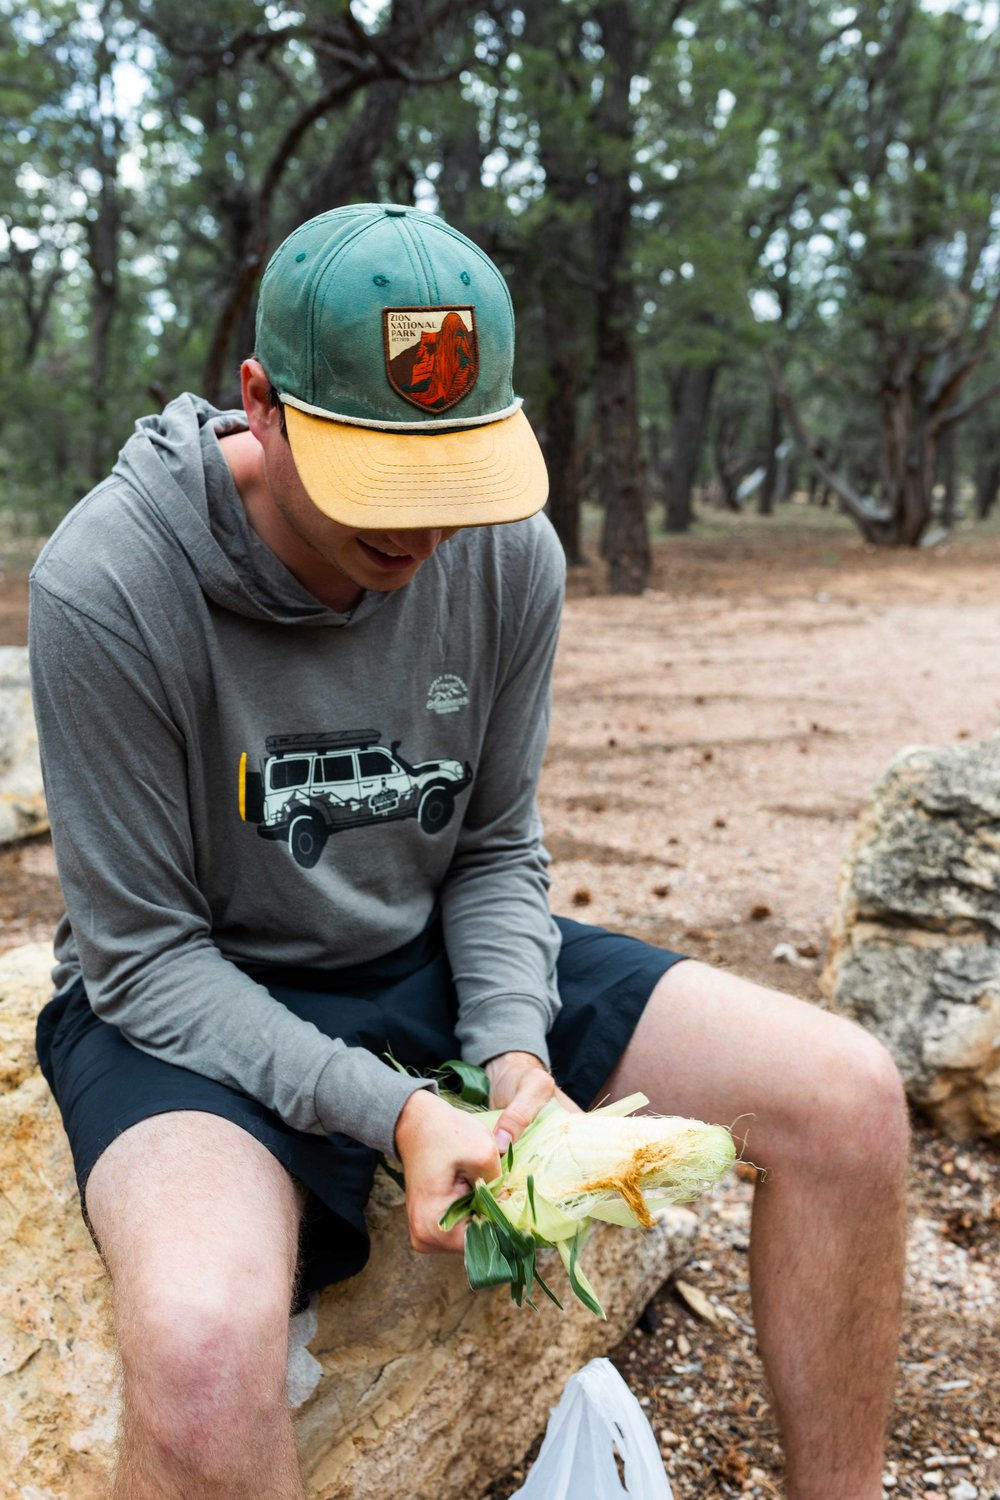 arizona road trip cooking with cocktail rings dinner camping grand canyon josh shucking corn